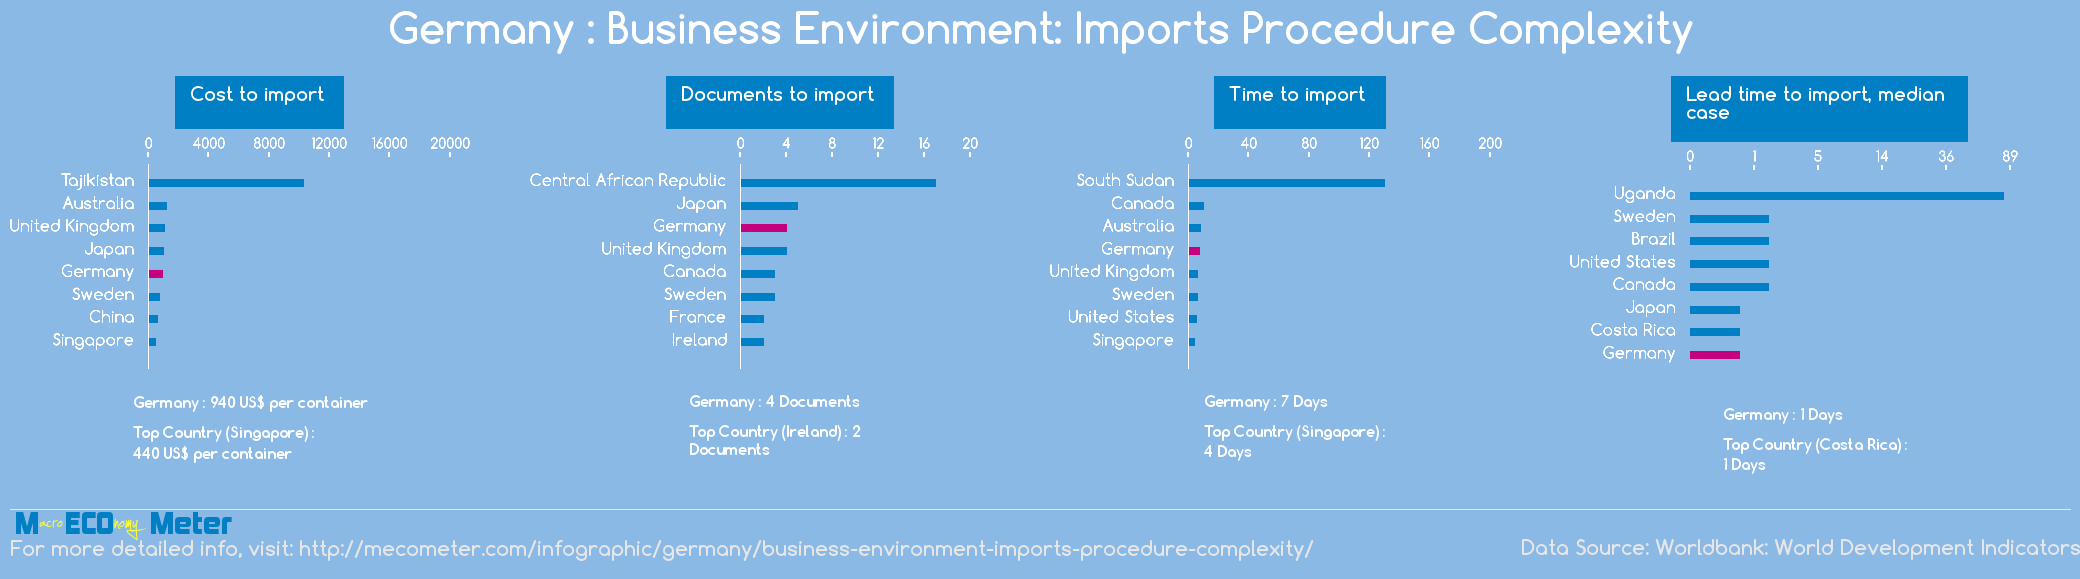 Germany : Business Environment: Imports Procedure Complexity